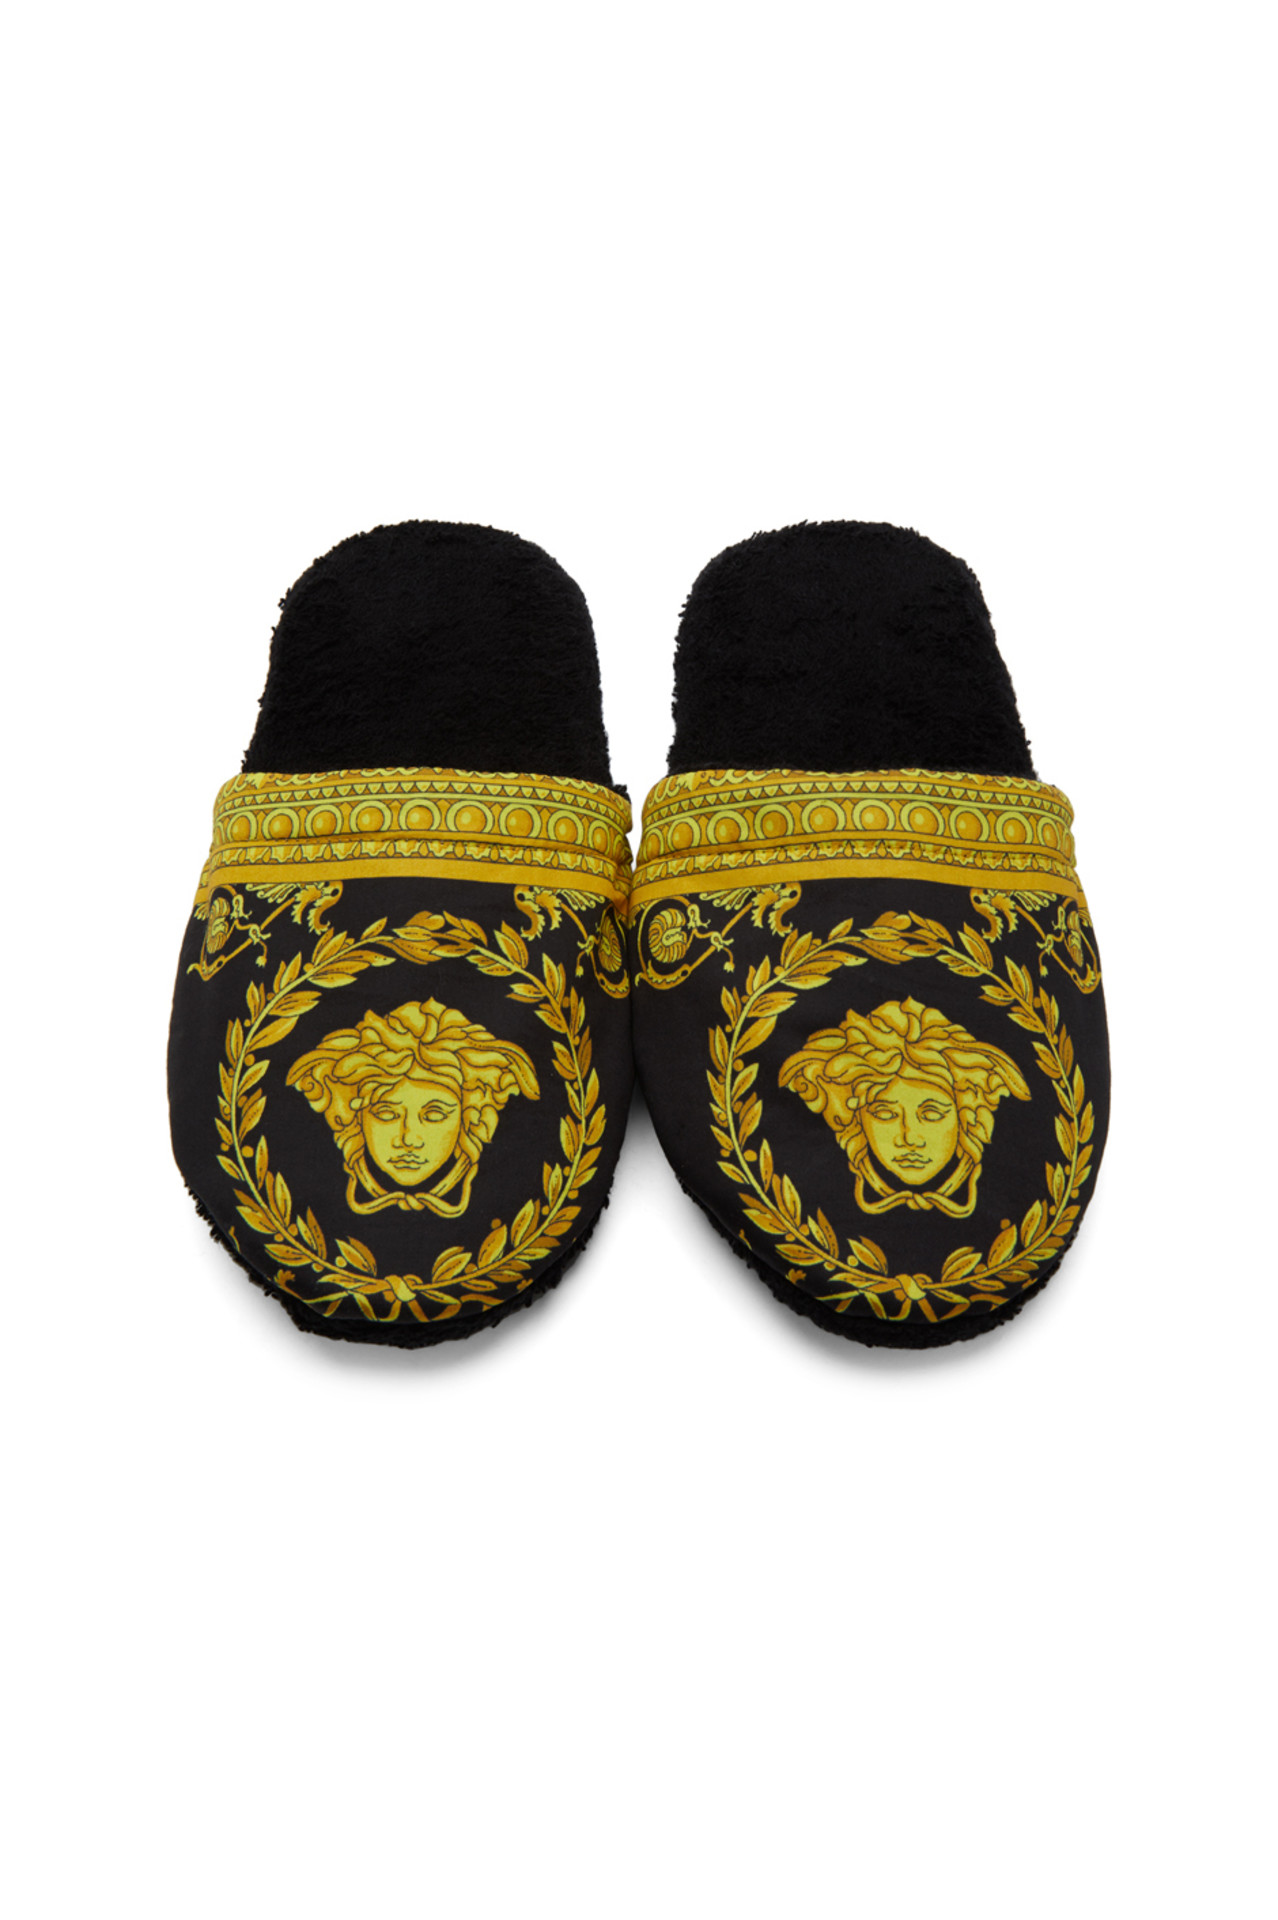 Versace men's house slippers (black Versace house slippers with gold pattern on top)